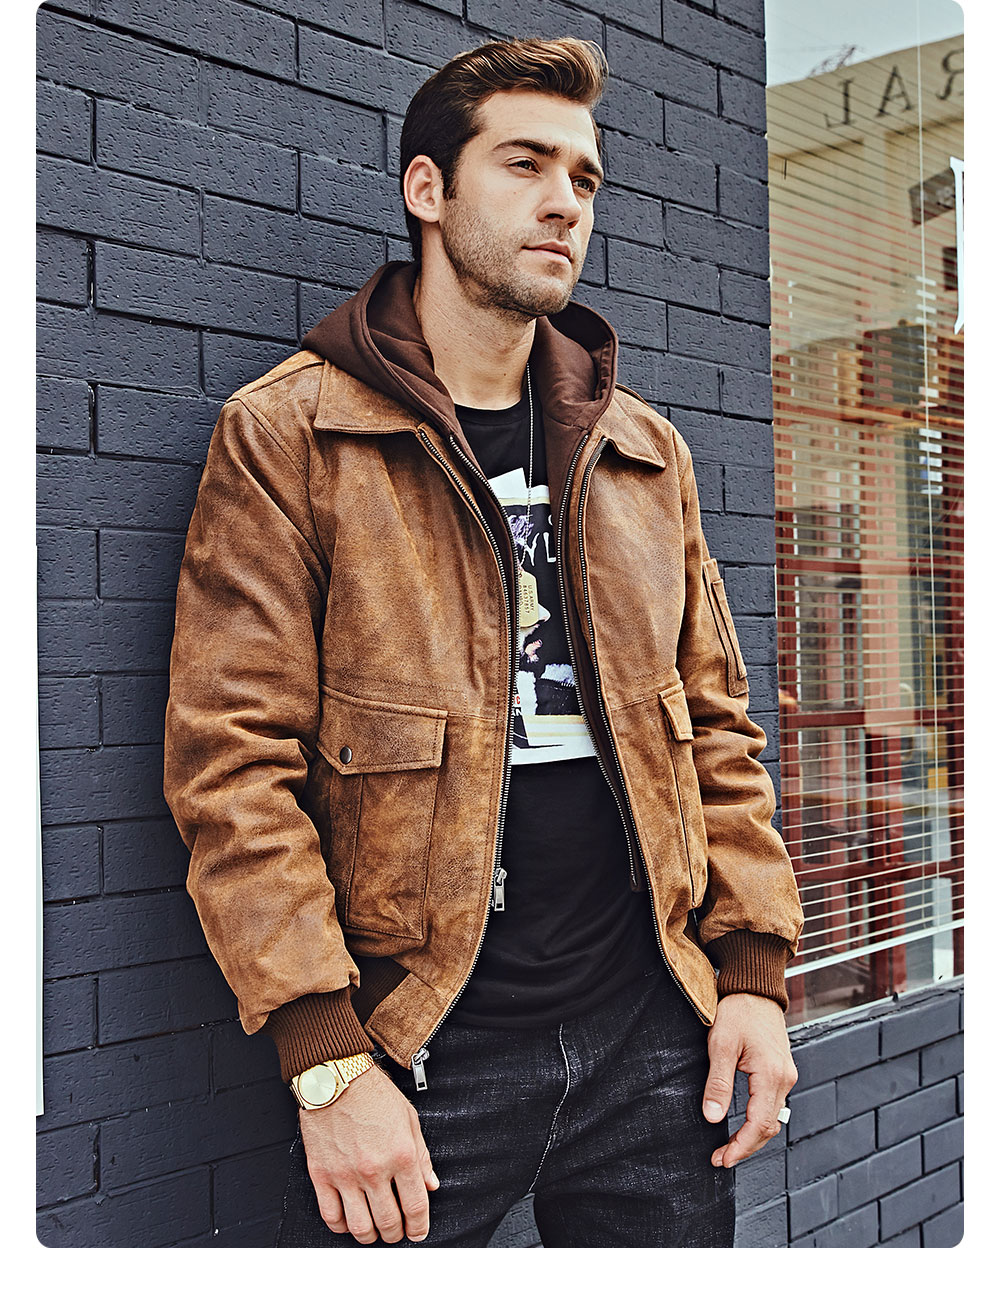 Hd8074e4c2aa84ec18b29dd8efaf9ace5h FLAVOR New Men's Genuine Leather Bomber Jackets Removable Hood Men Air Forca Aviator winter coat Men Warm Real Leather Jacket